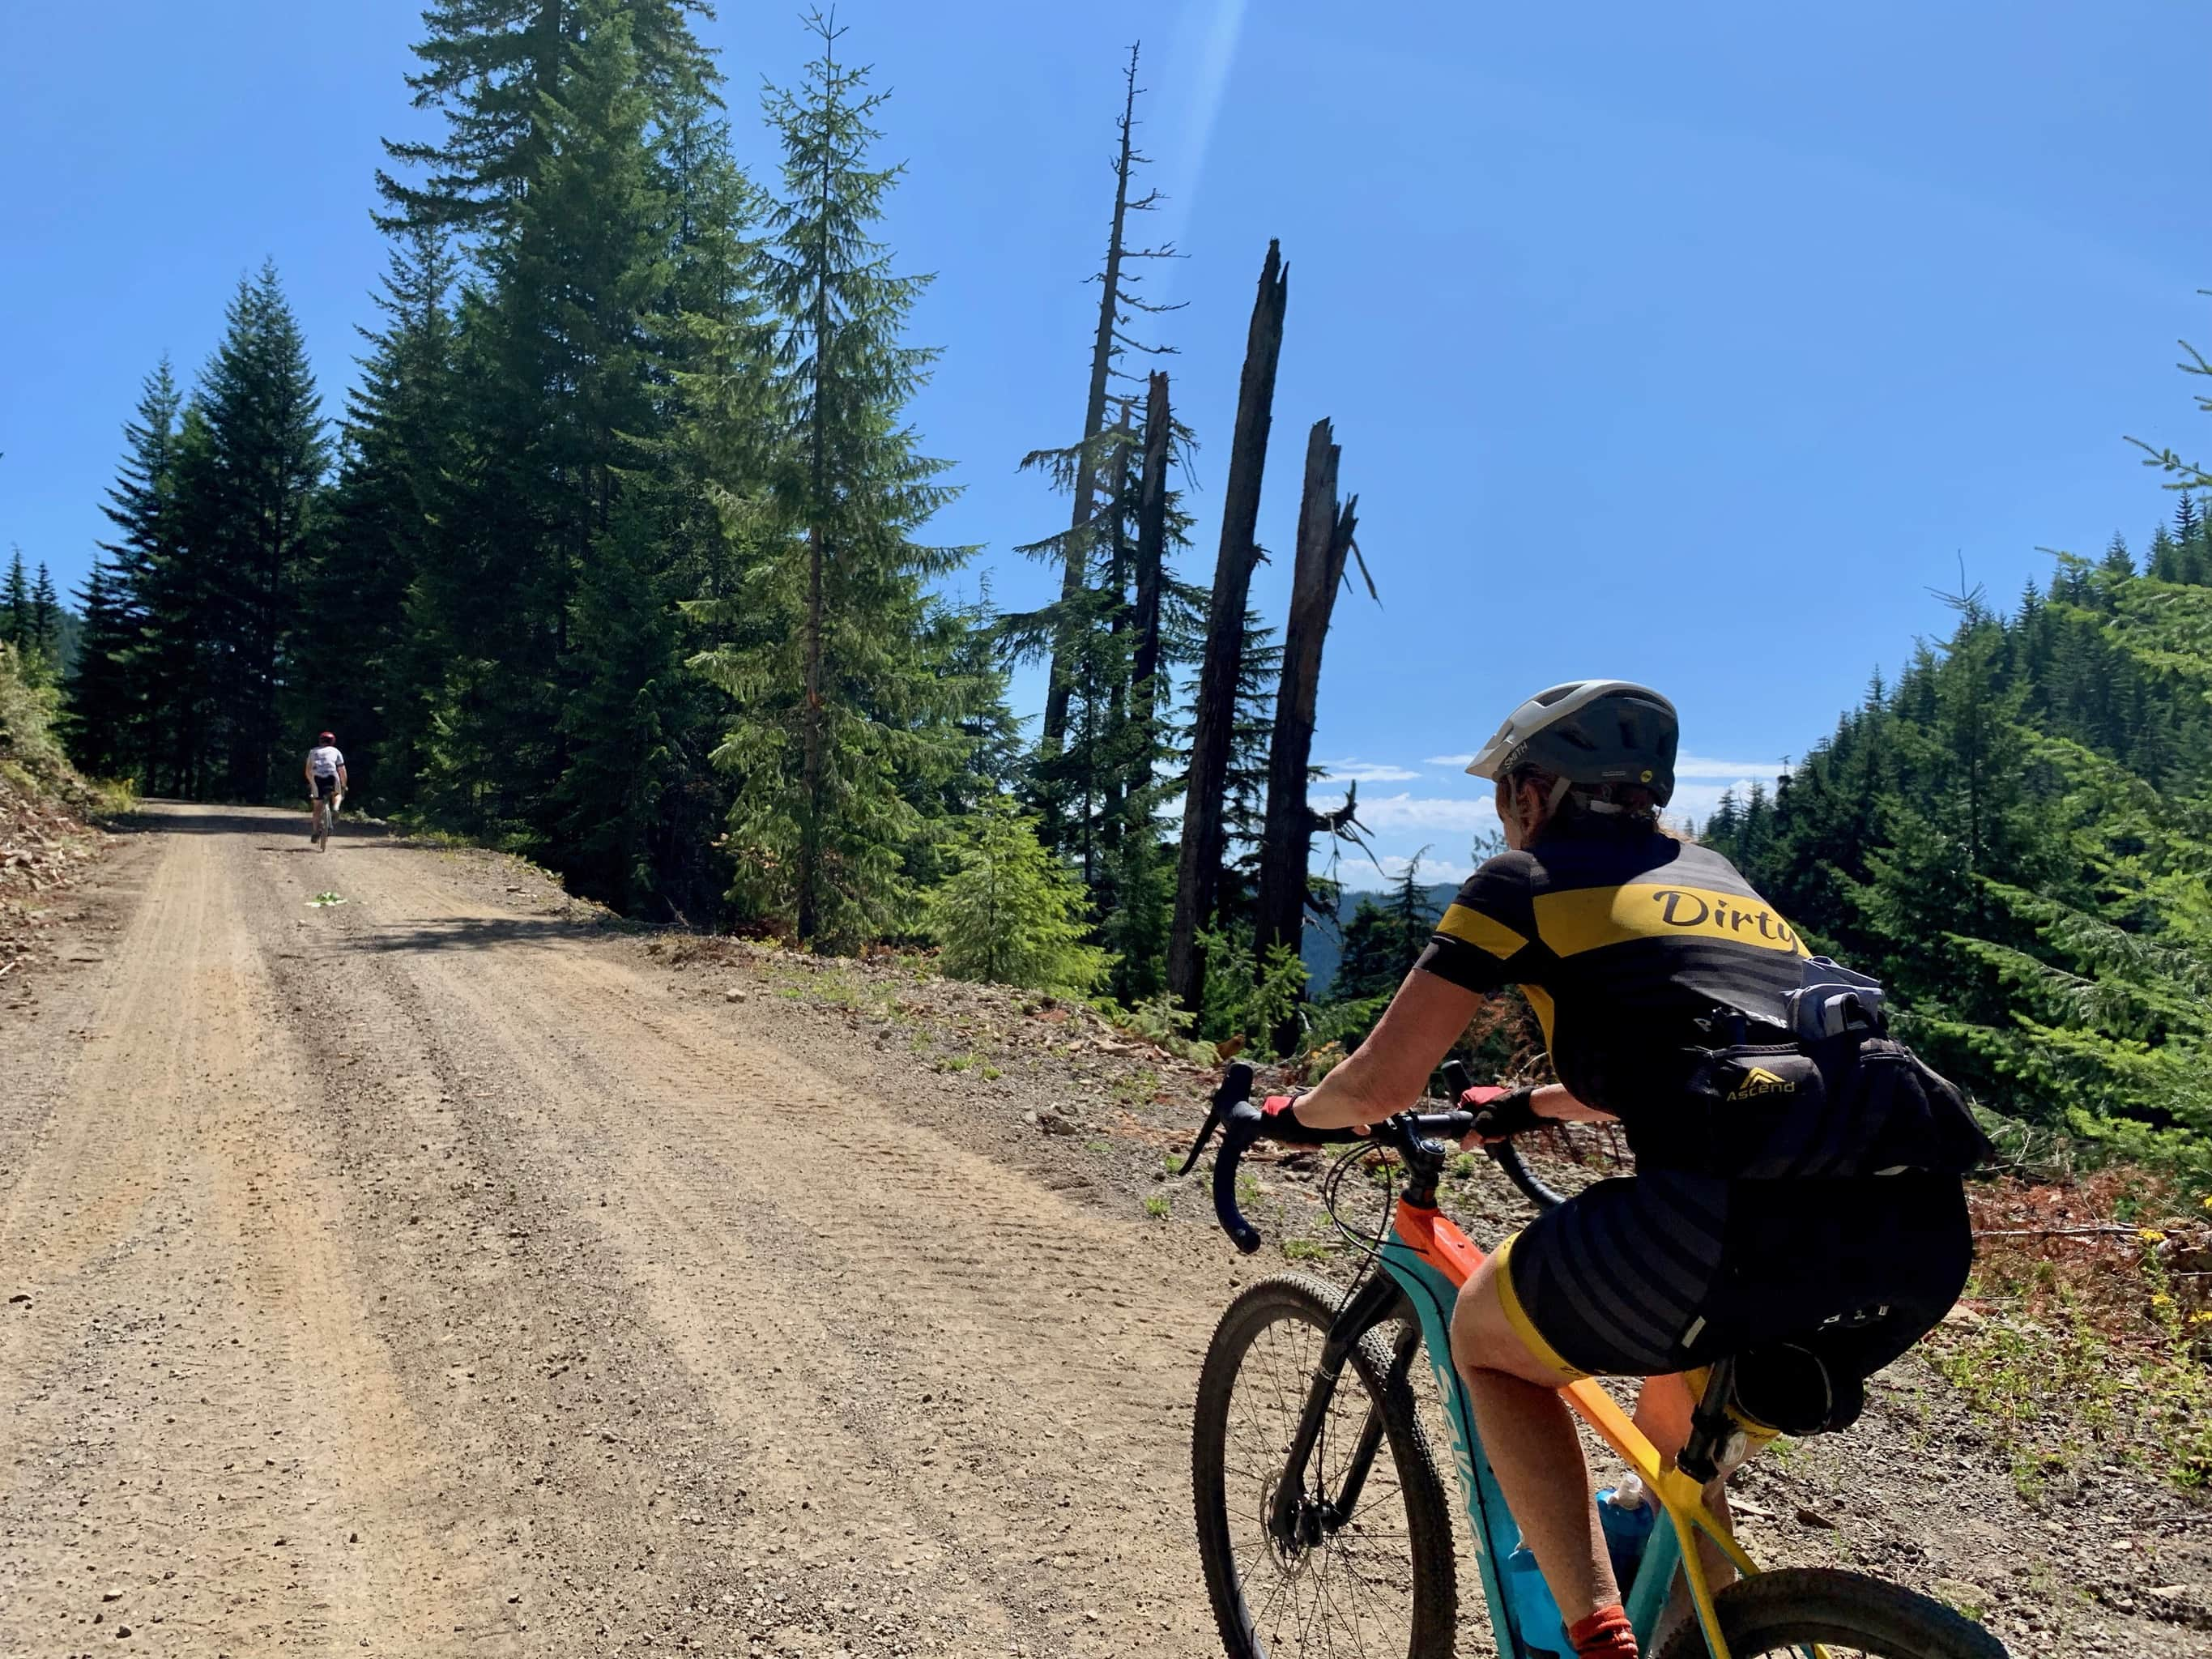 Bike rider climbing the gravel section of NF-64 in the Gifford Pinchot National Forest.